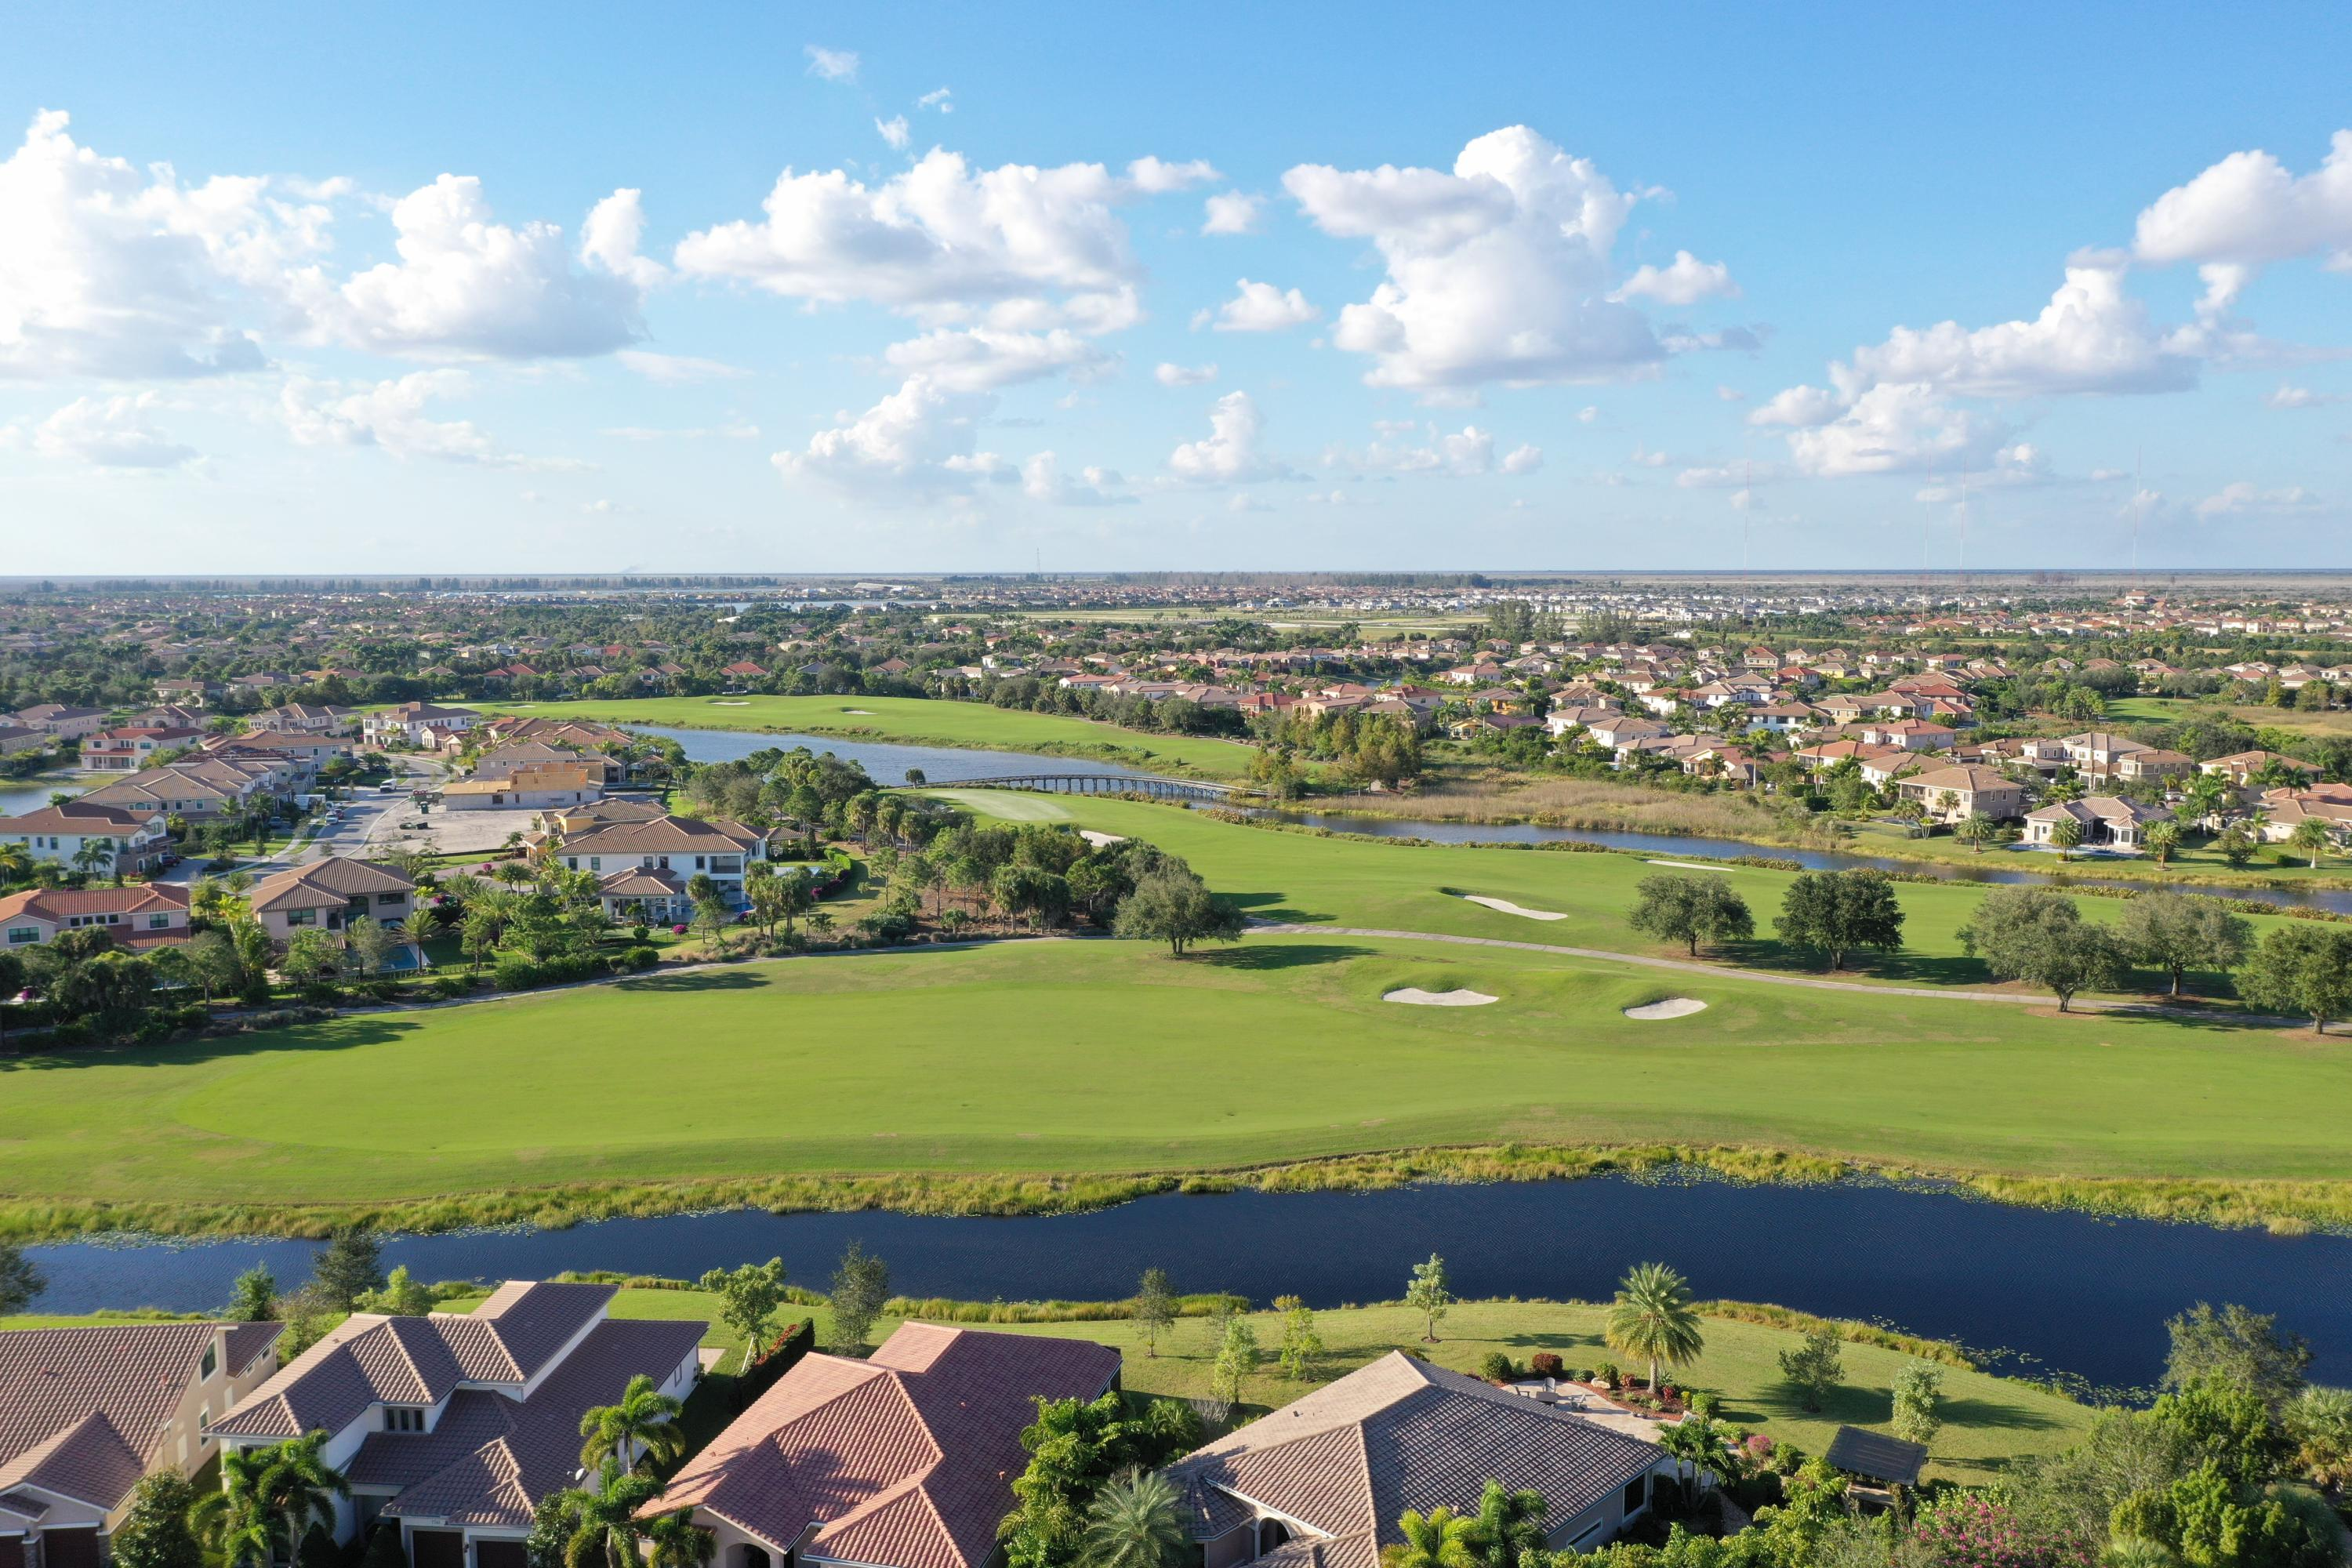 PARKLAND COUNTRY CLUB PARKLAND FLORIDA